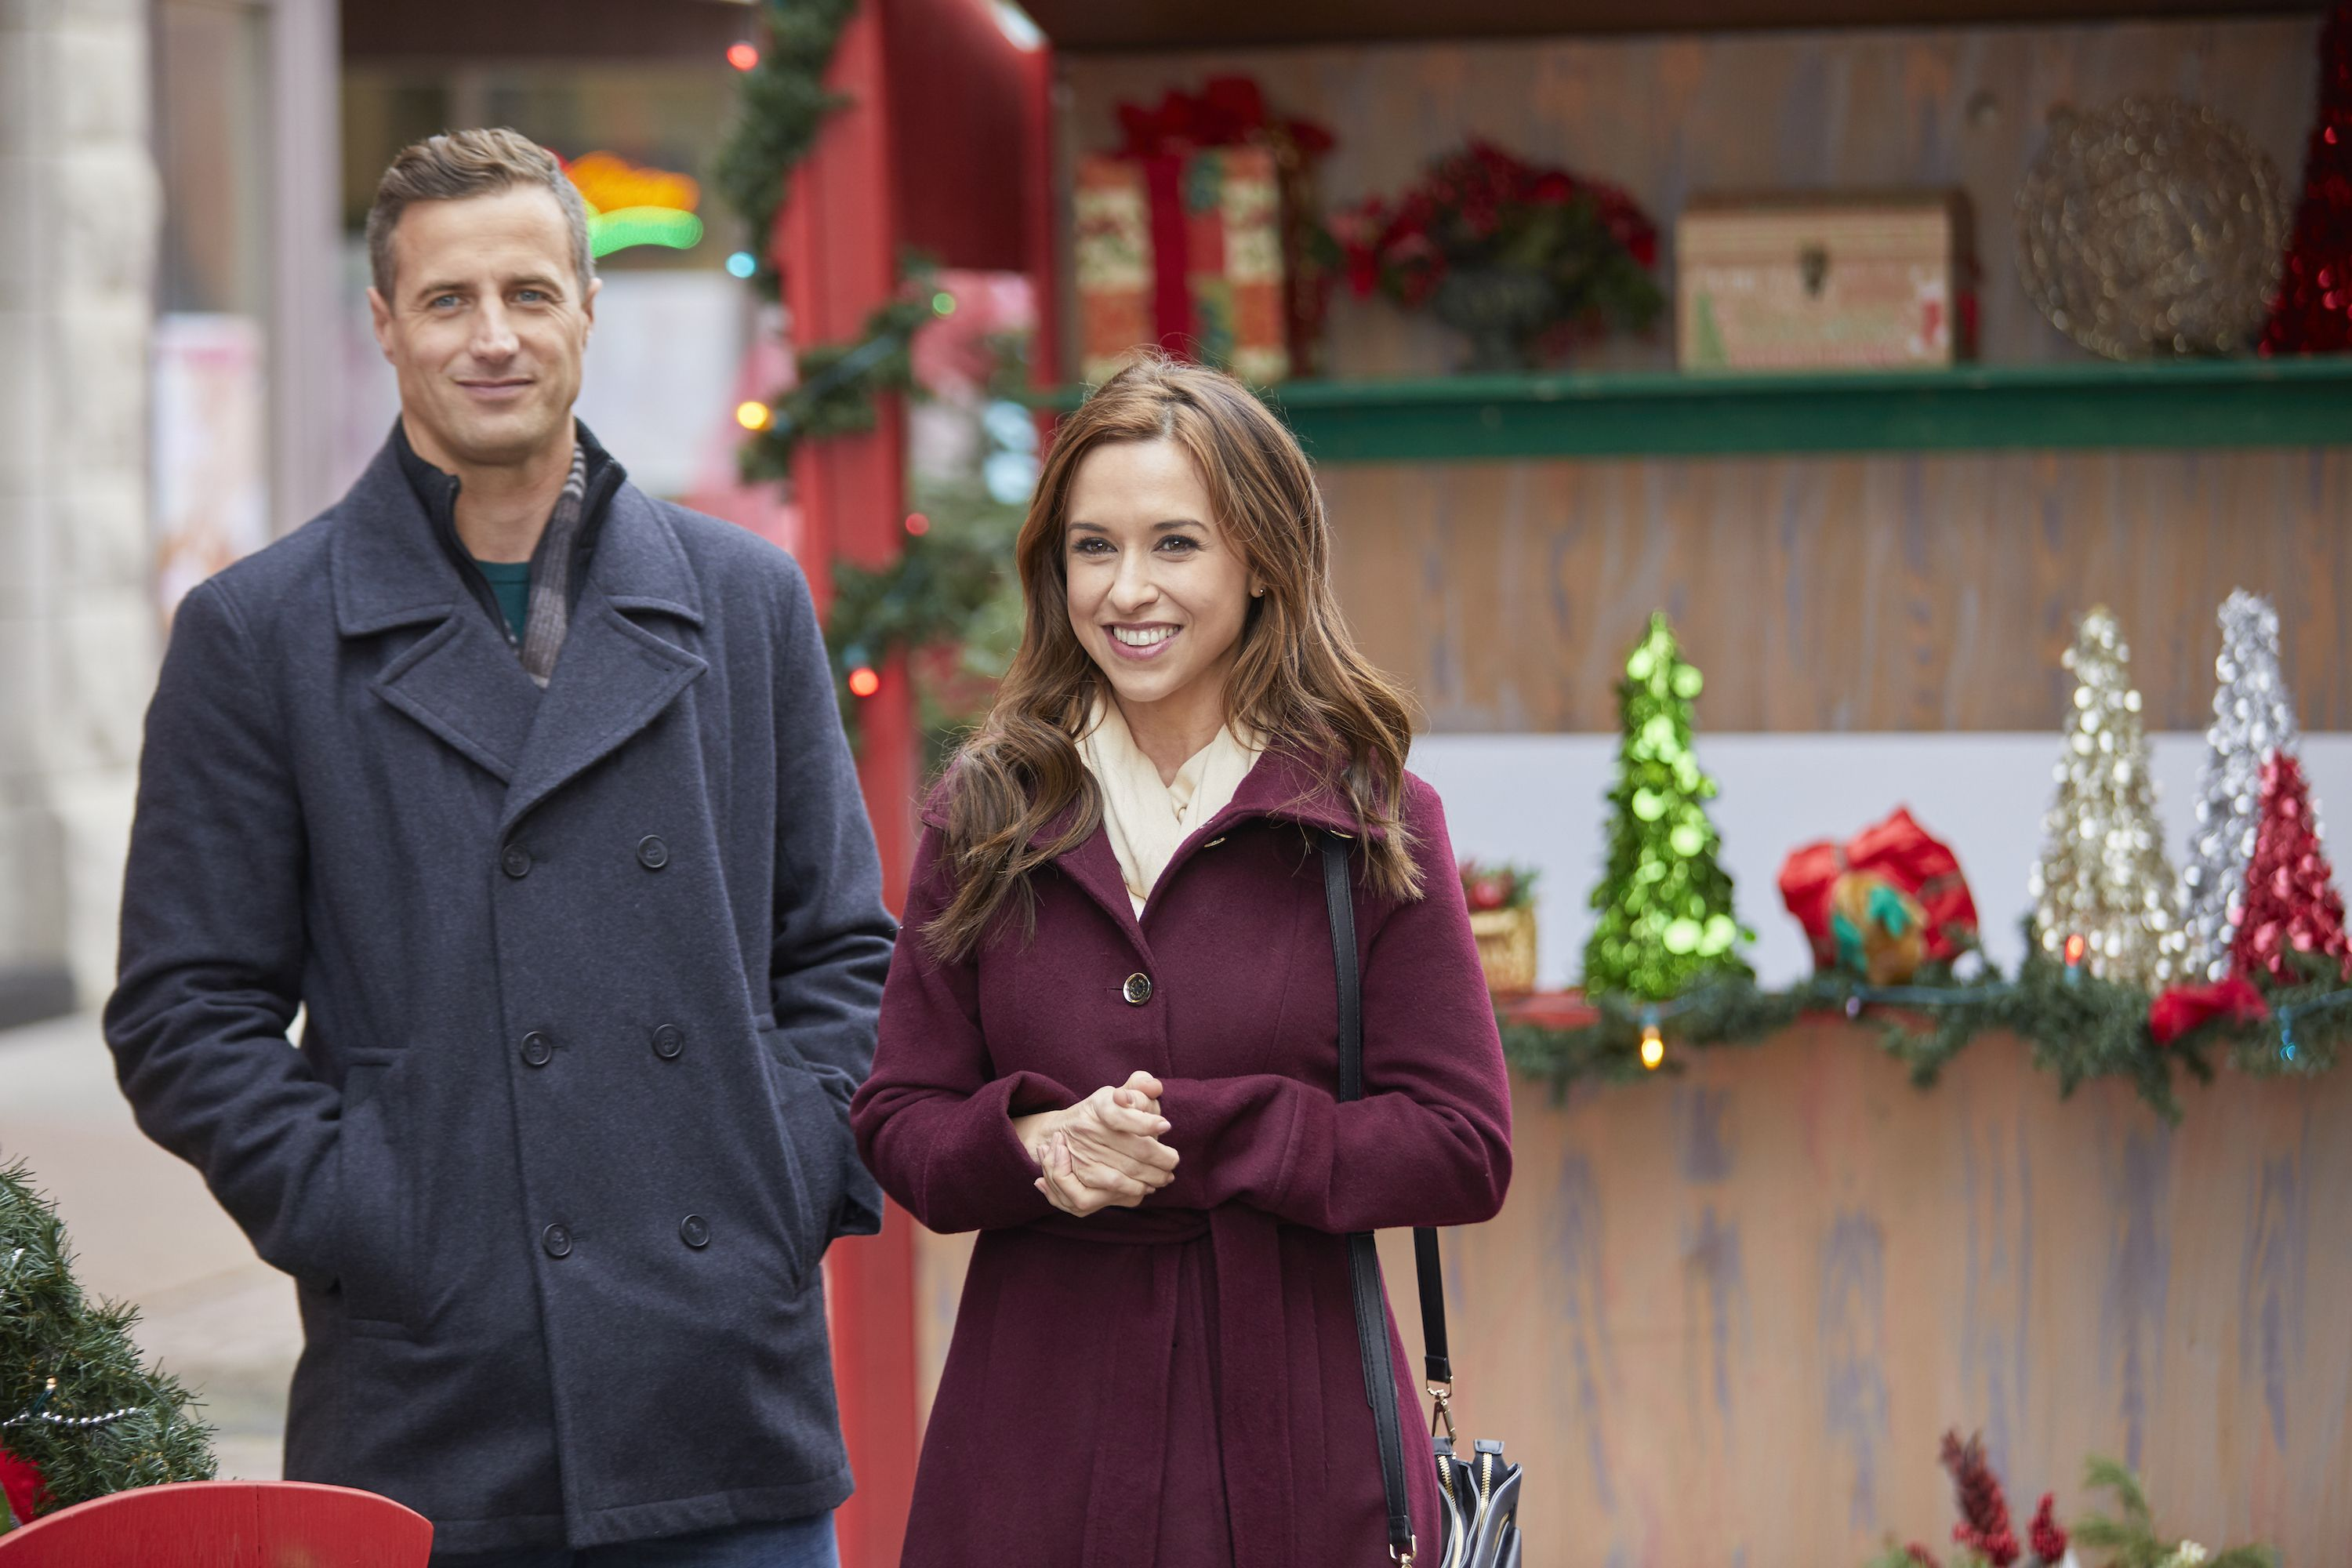 graphic regarding Abc Family 25 Days of Christmas Printable Schedule titled Hallmark Xmas Within July Videos 2019 - Hallmark Channel